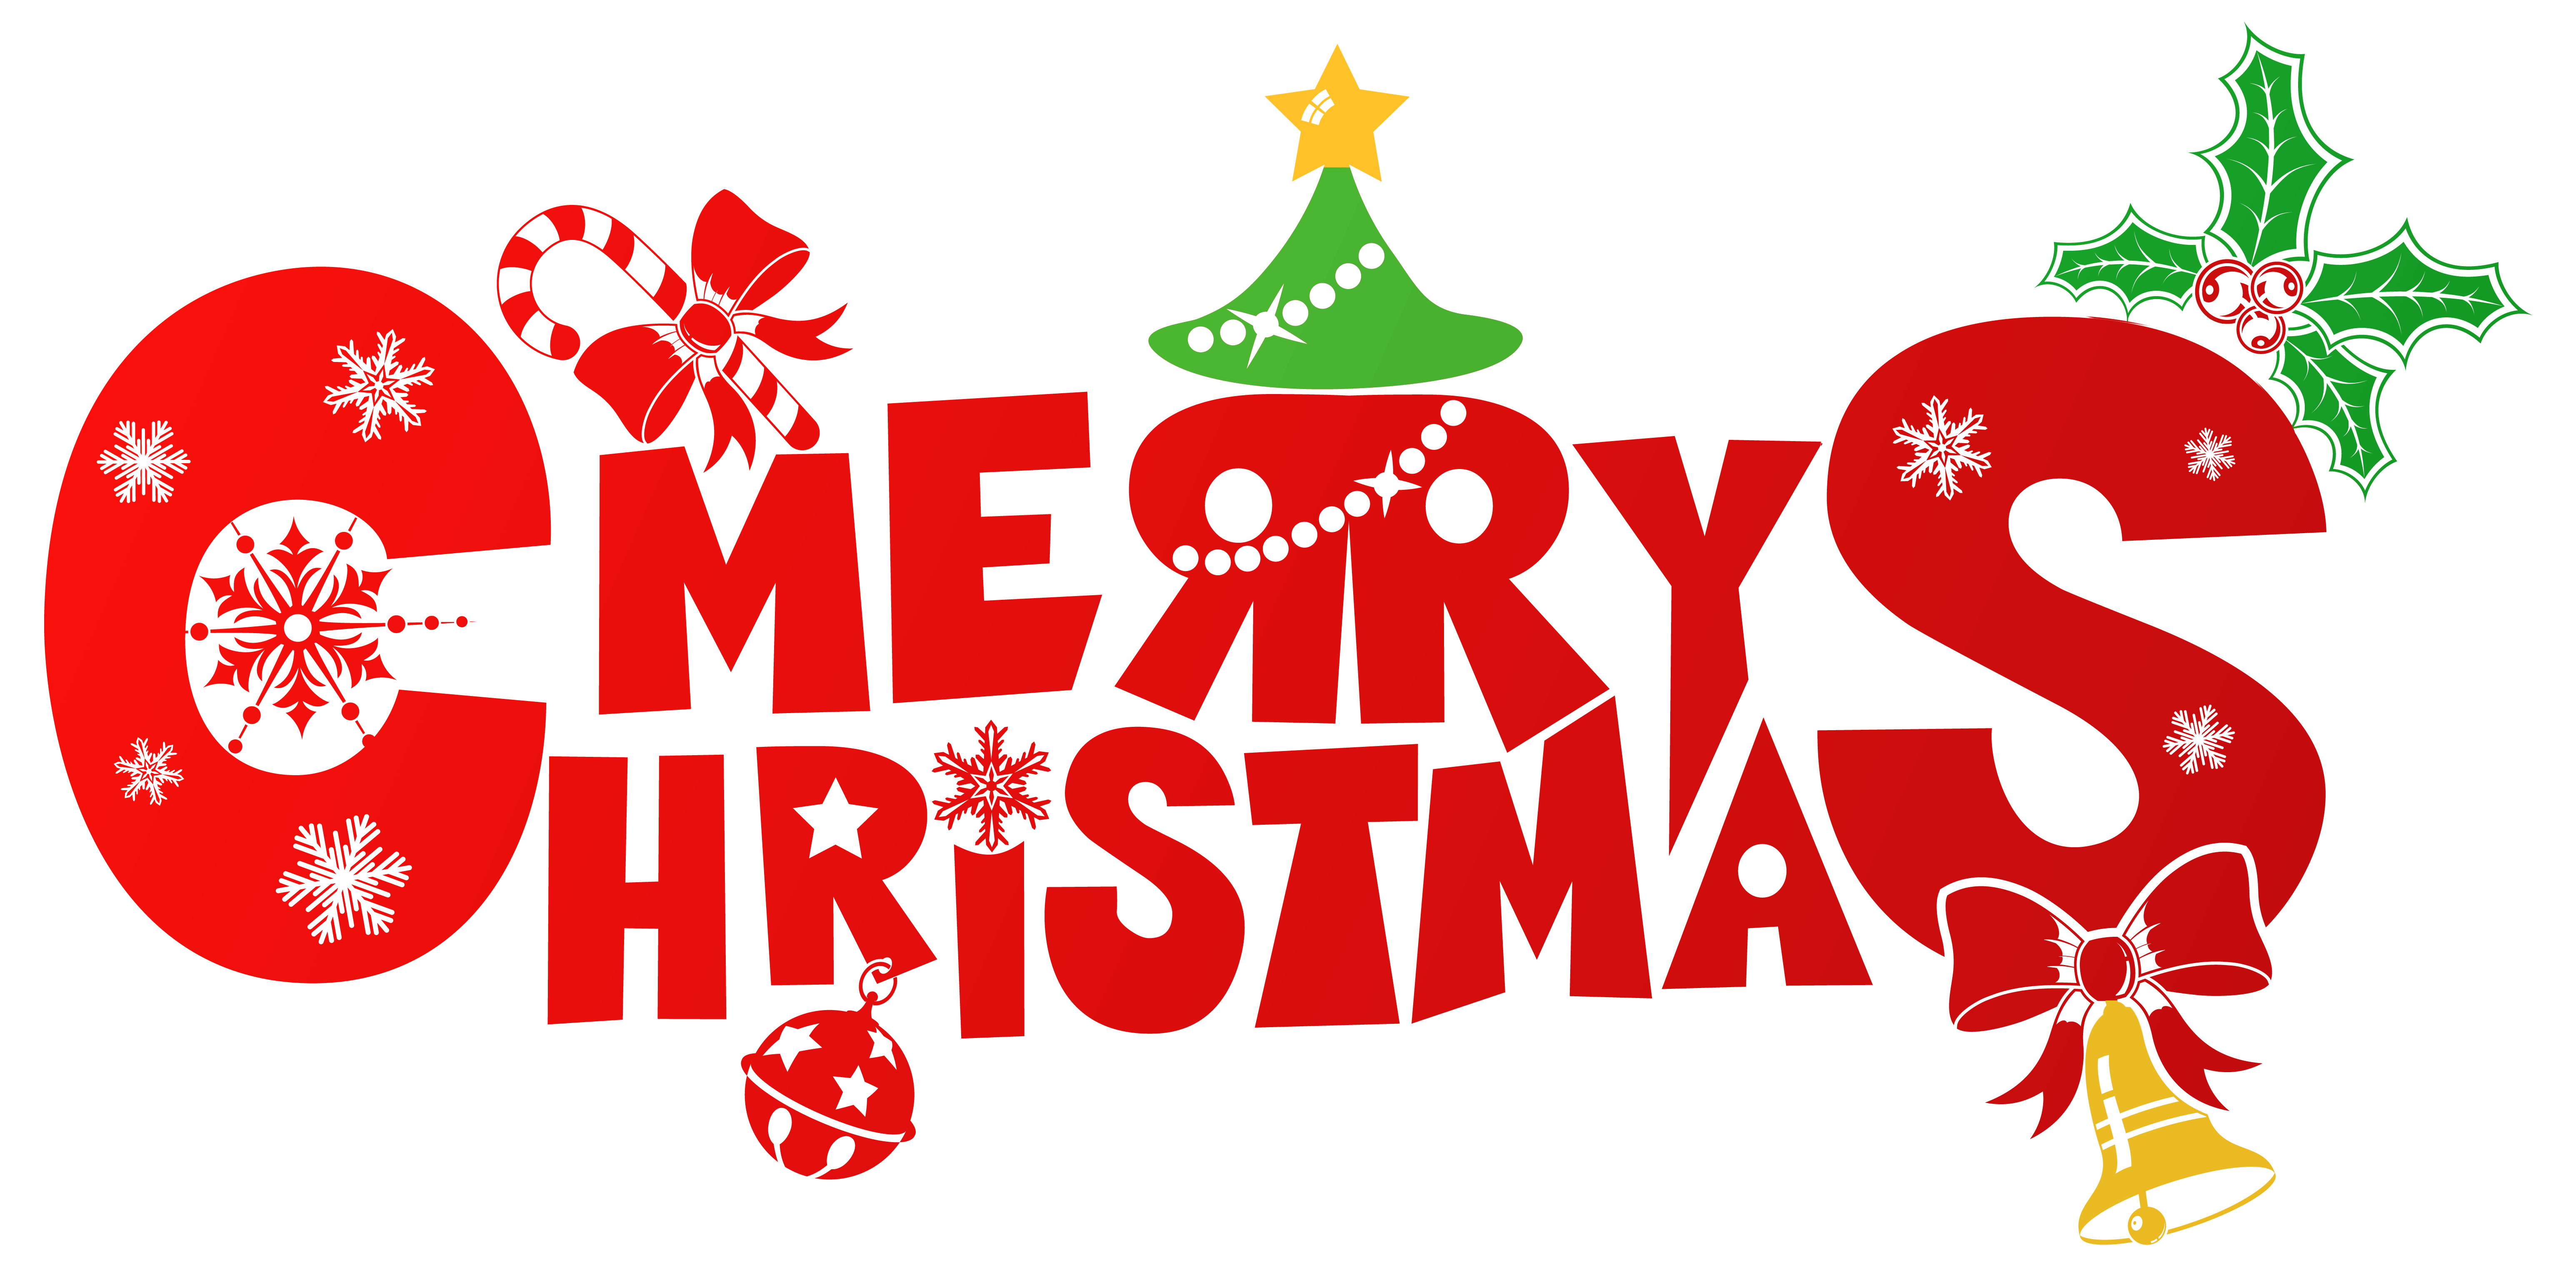 Red Merry Christmas PNG Clipart Image Gallery